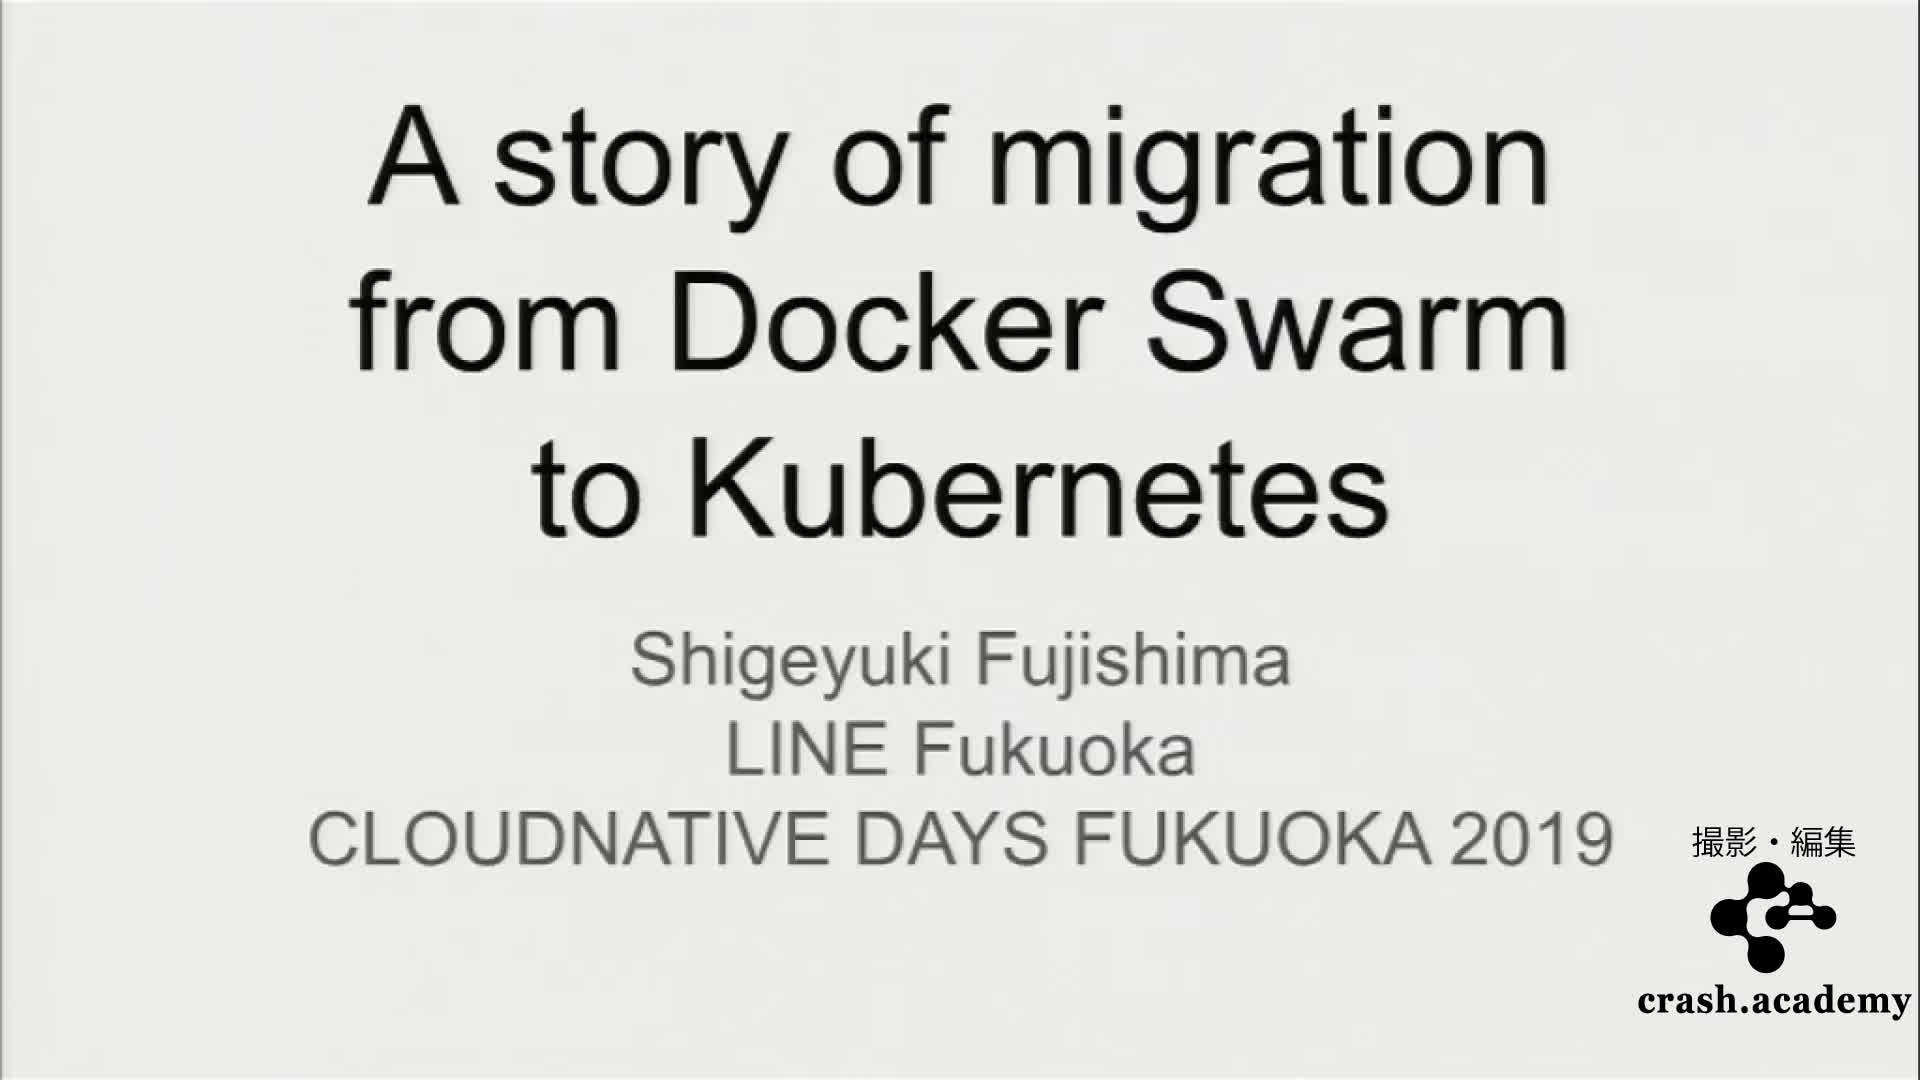 A story of migration from Docker-swarm to Kubernetes